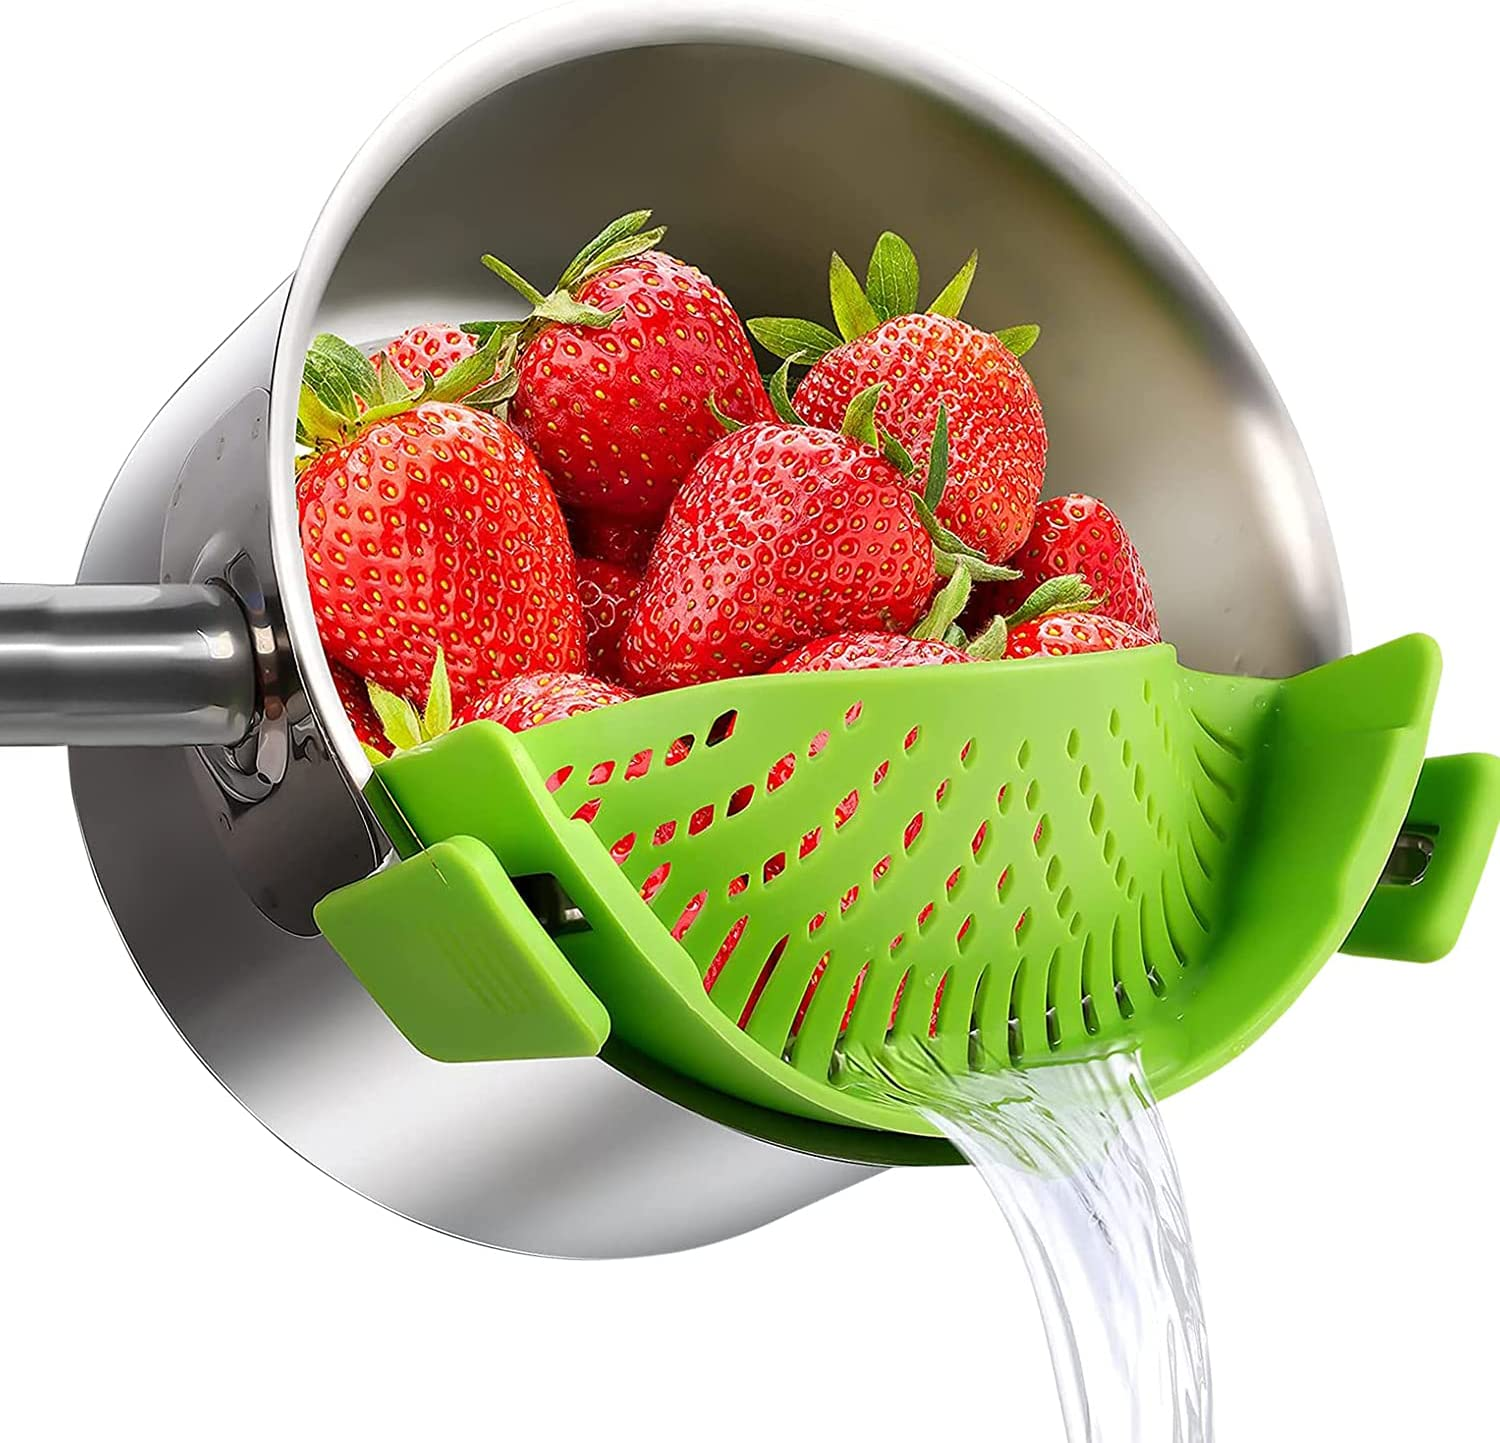 Silicone Food Strainer Clip on Now free shipping Pots Max 51% OFF Stra Pan Pasta for